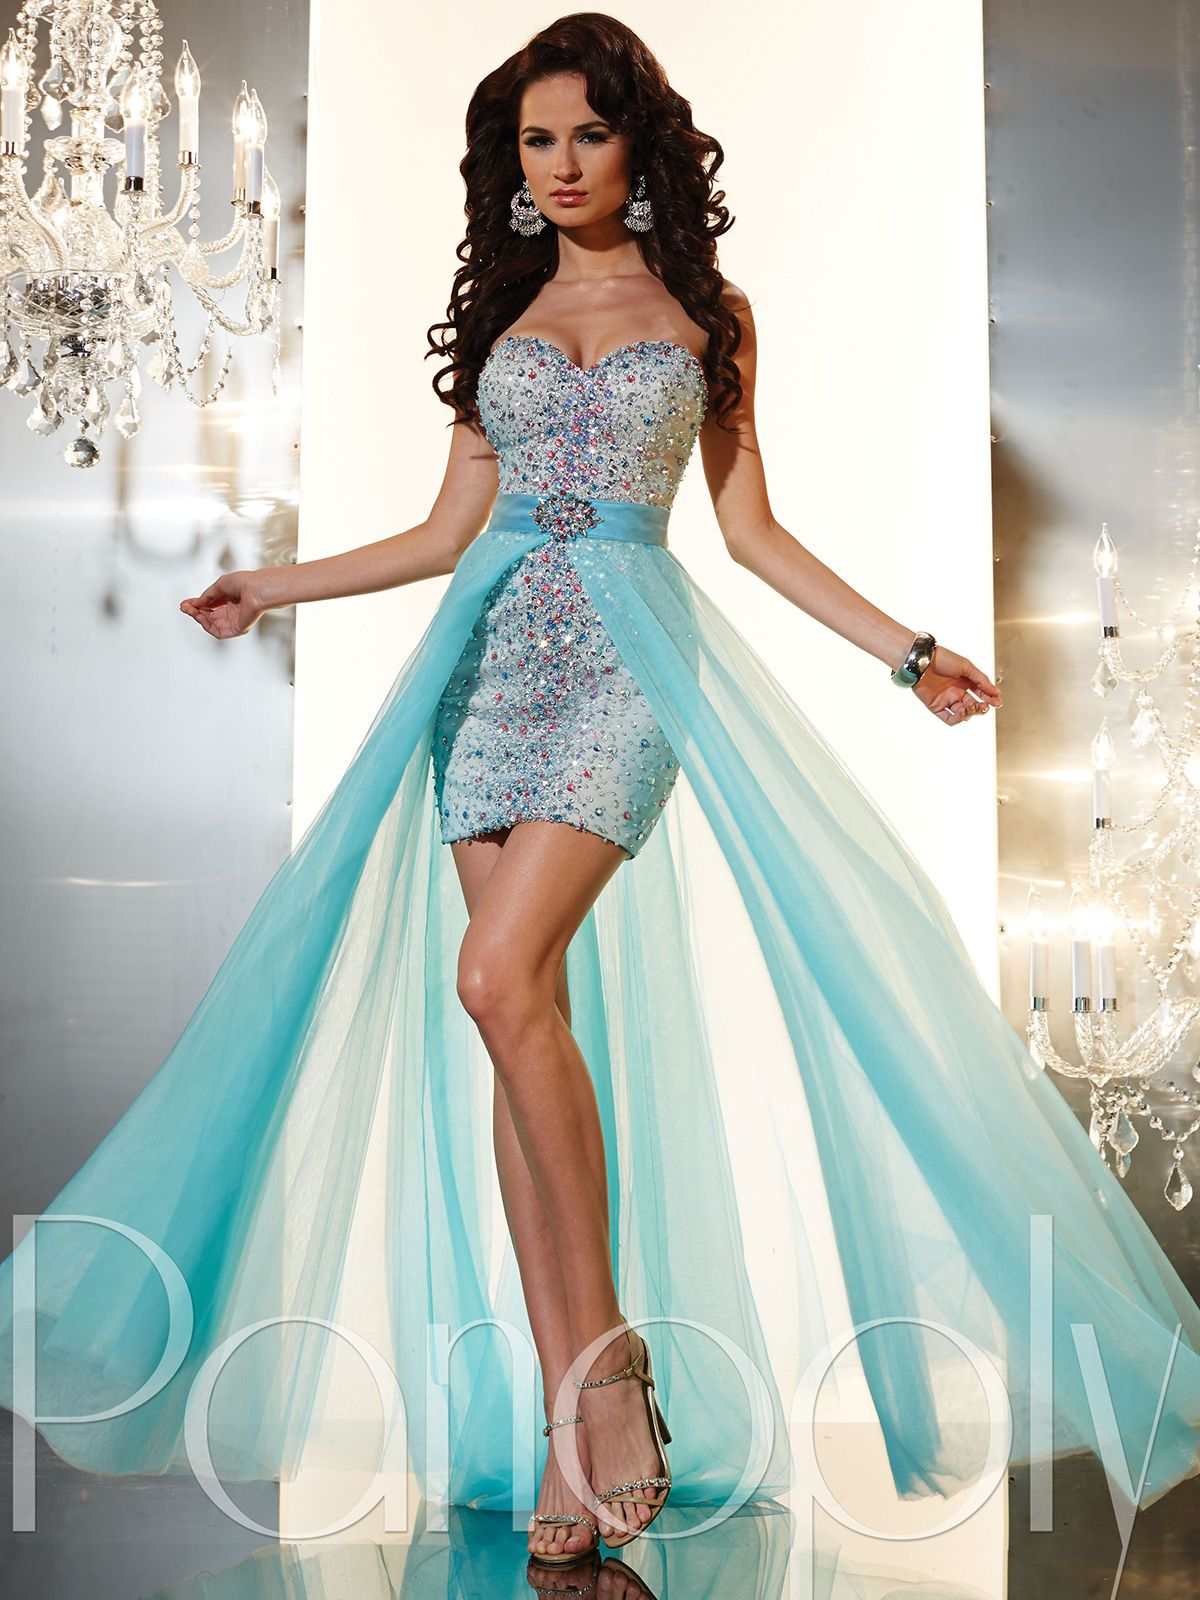 Pin by Lyn Rivas on Quince Mommy\'s dress | Pinterest | Elegant ...